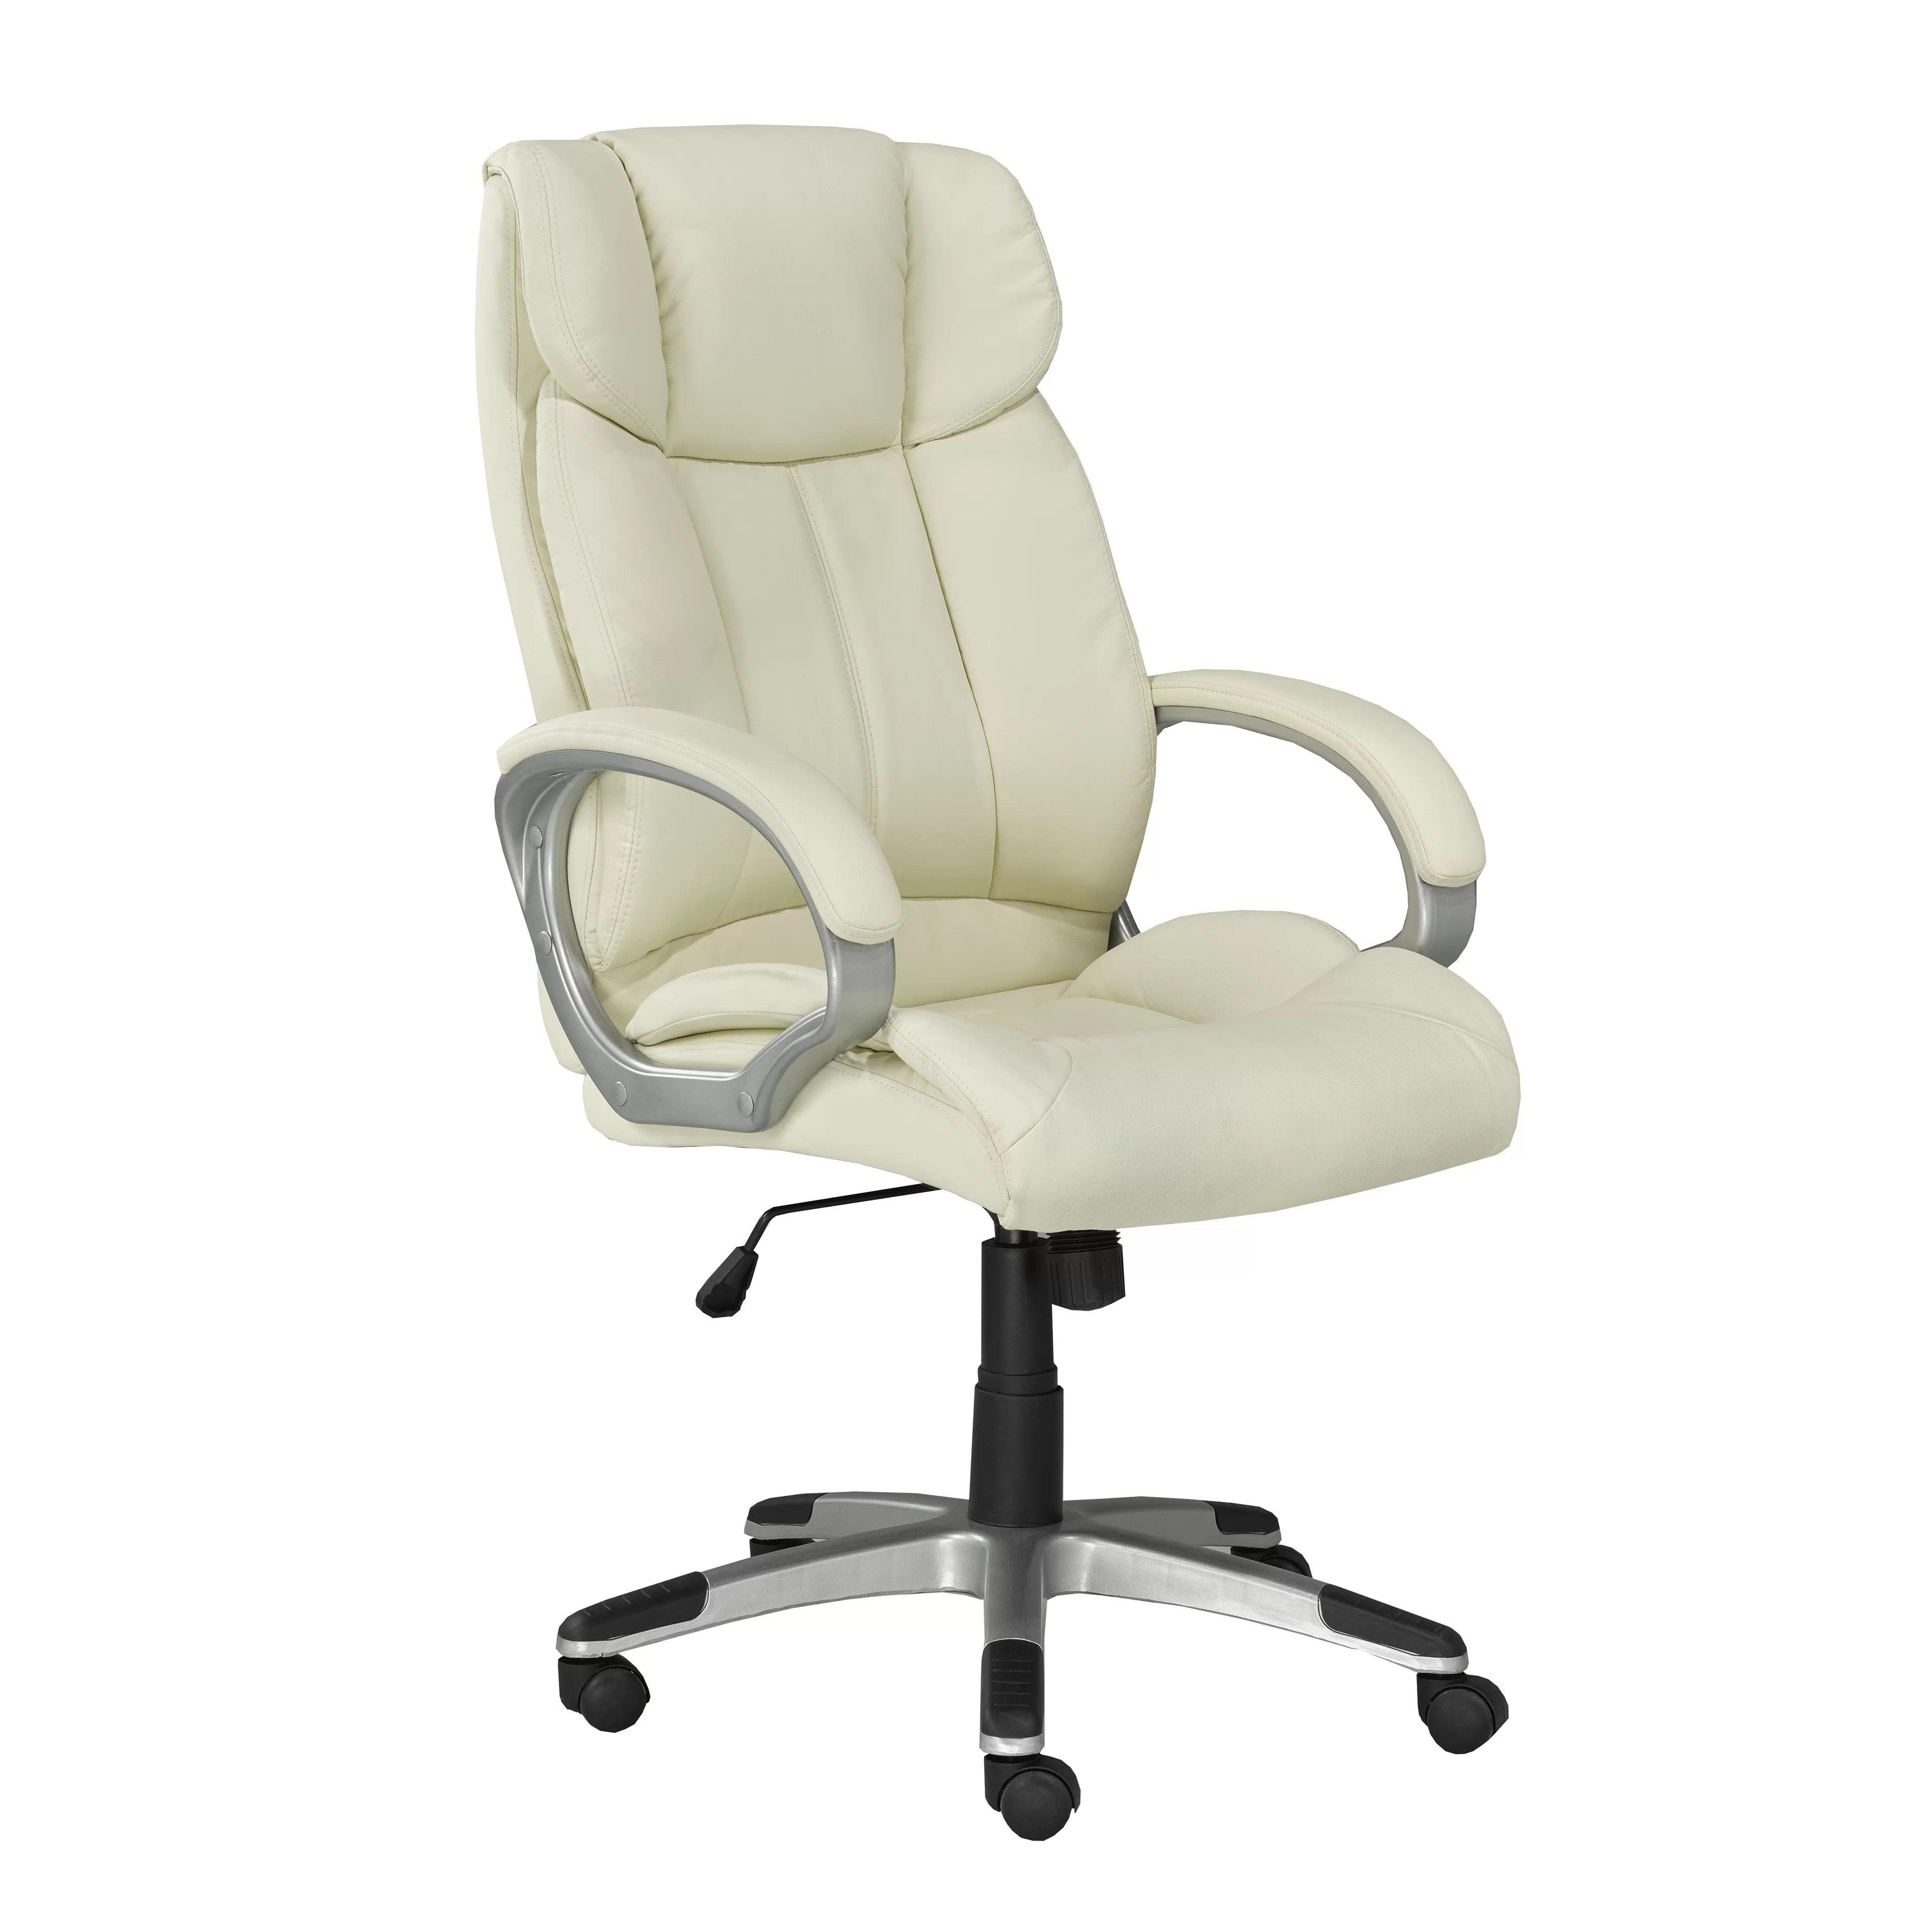 office chair review round folding lawn chairs brassex high back executive and reviews wayfair